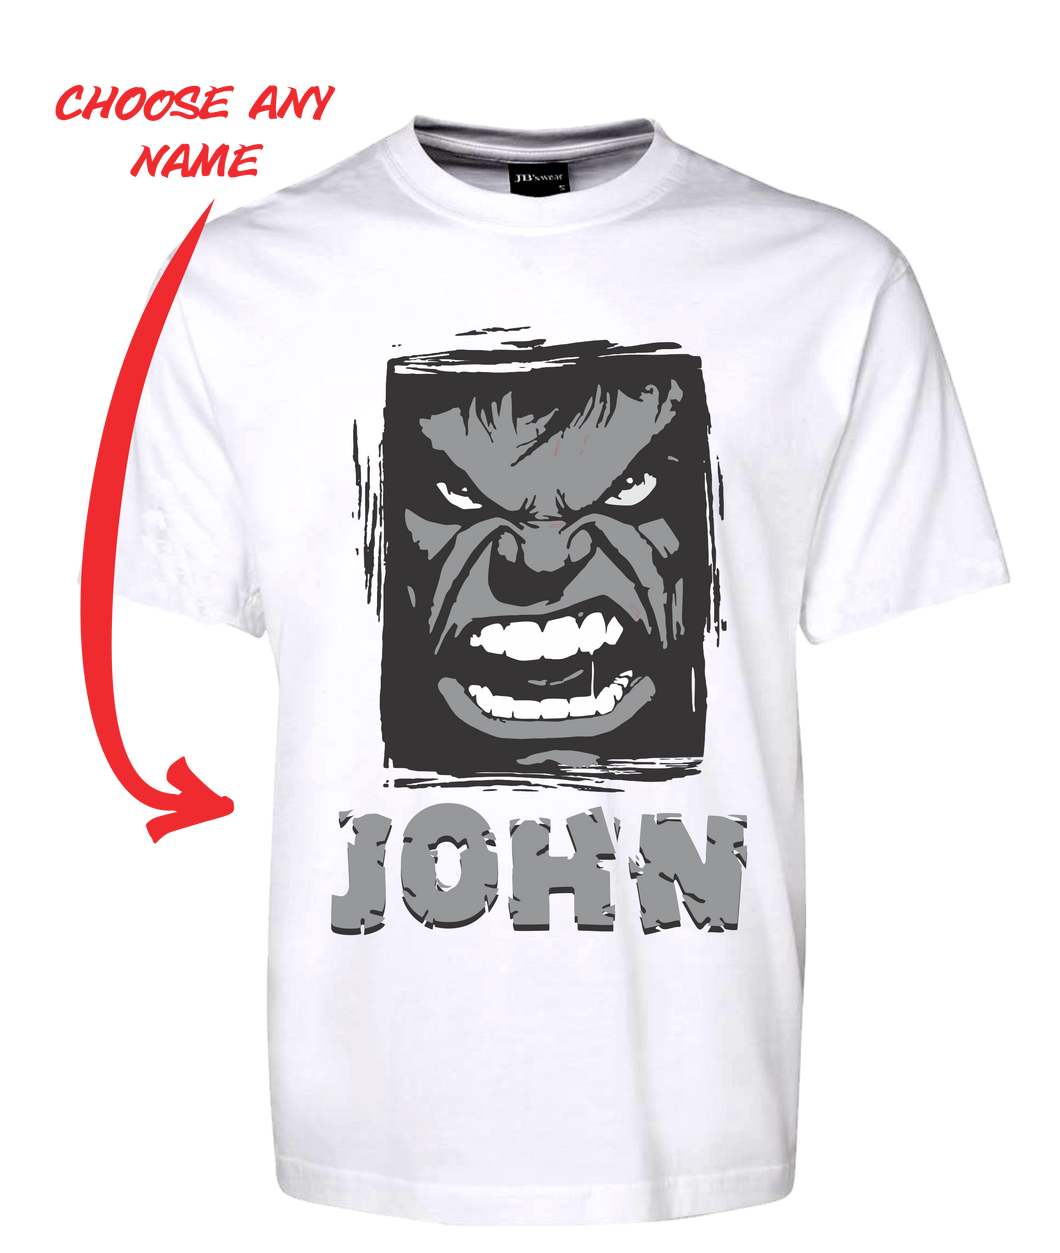 Angry Man Personalised Hulk Style Tee T-Shirt GREY FDG01-1HT-23018 - fair-dinkum-gifts